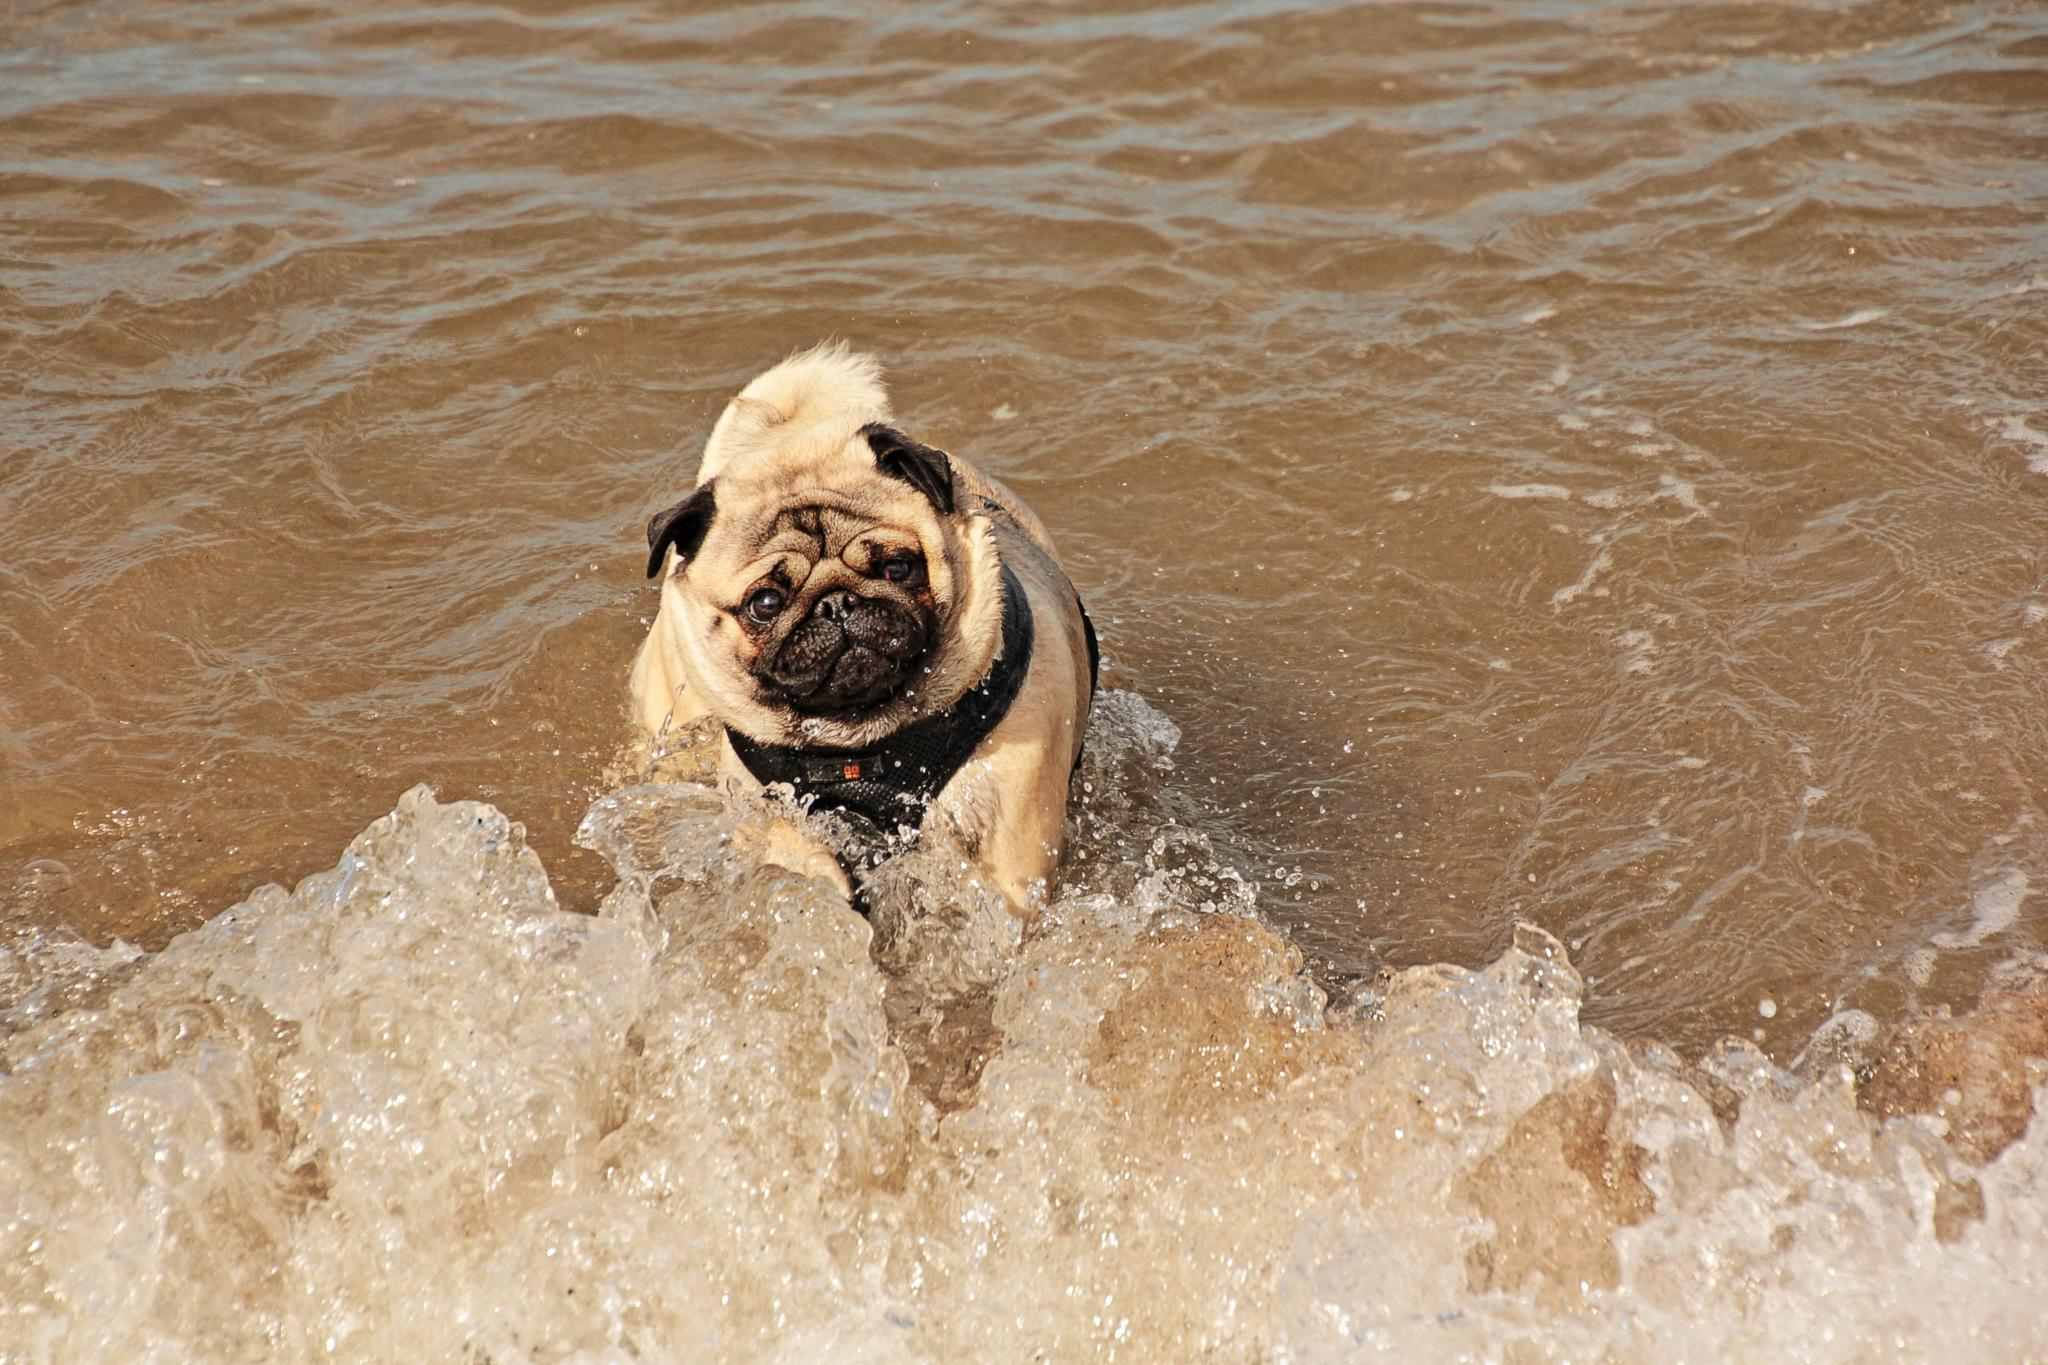 Who says Pugs can't surf by plprogers